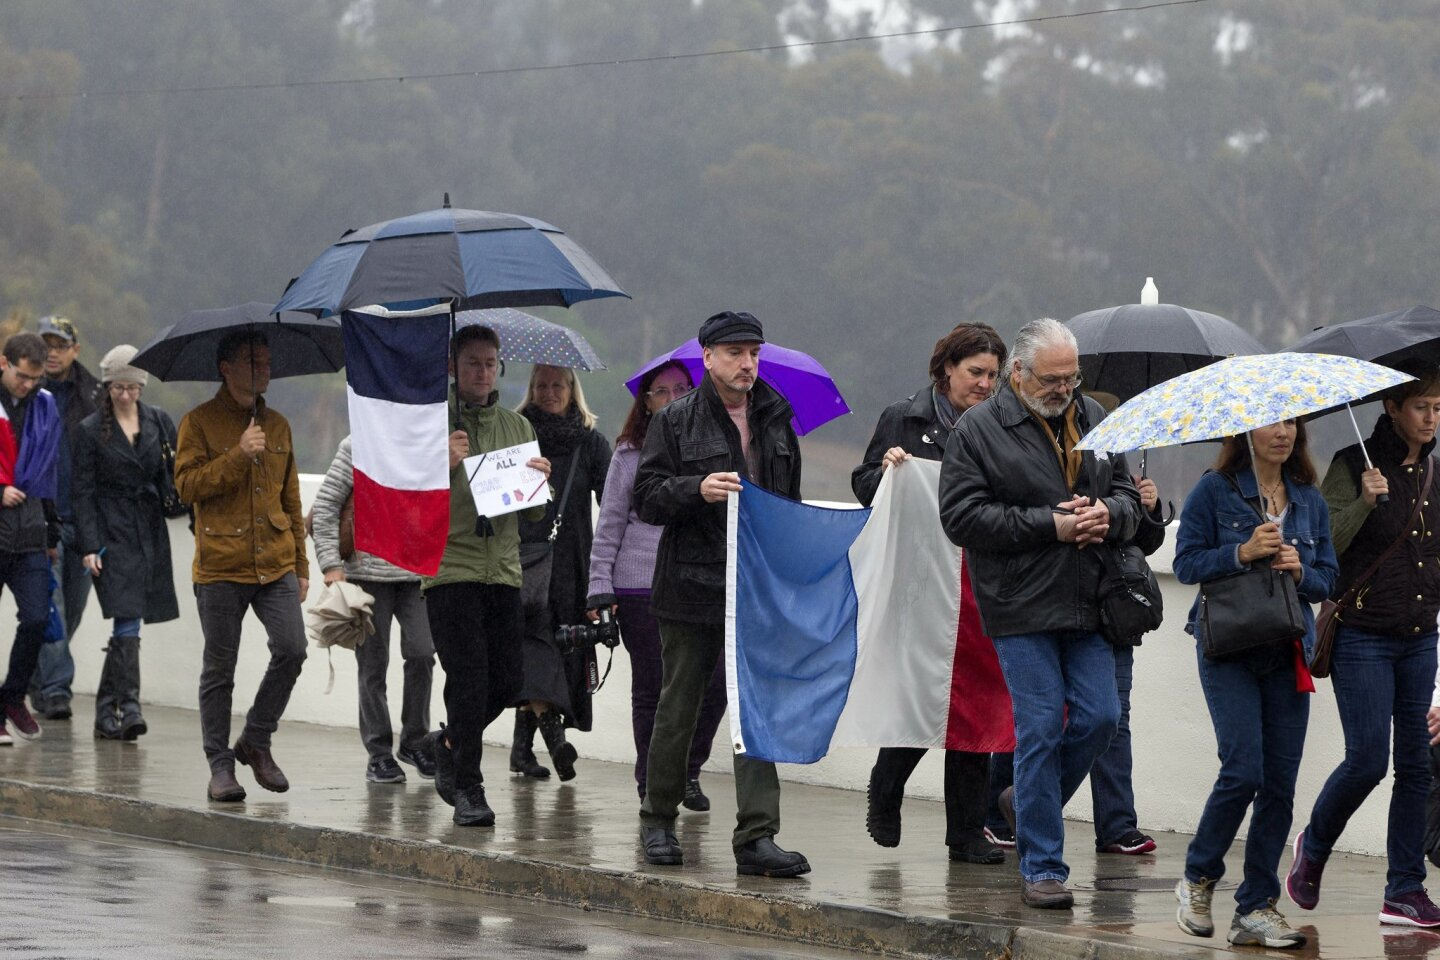 In a show of solidarity with the cartoonists and others killed in France last week by extremists, a small group of San Diegans walked in the rain carrying signs that said Je Suis Charlie. The group walked from the House of France and made their way through the park. The group makes their way over t